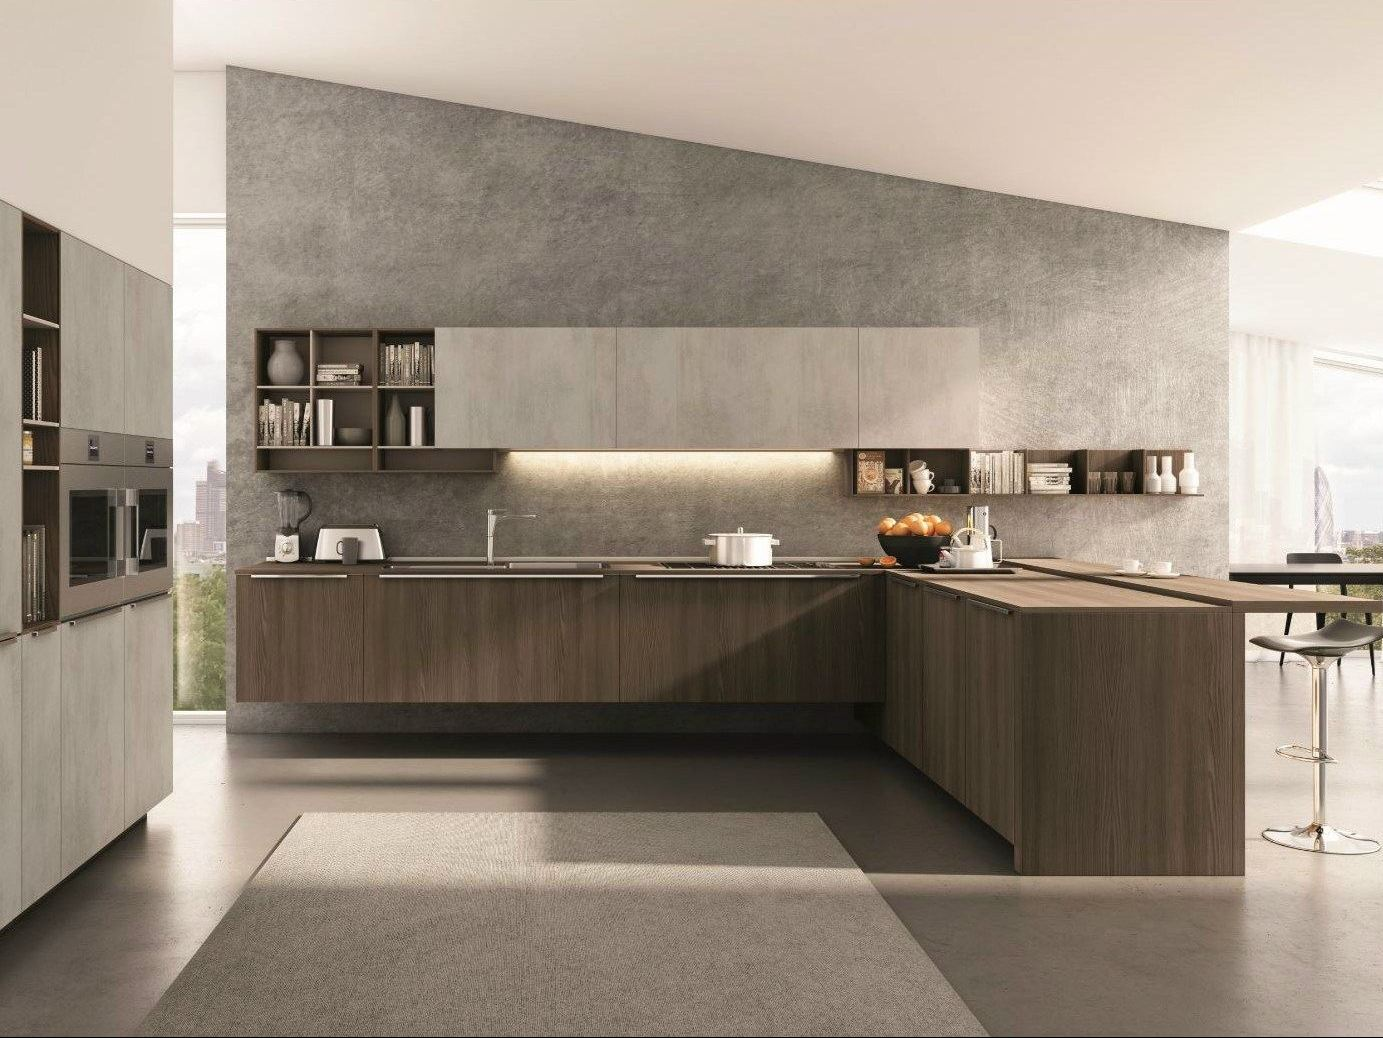 GJ-Kitchens-contemporary-11-20180815235837131